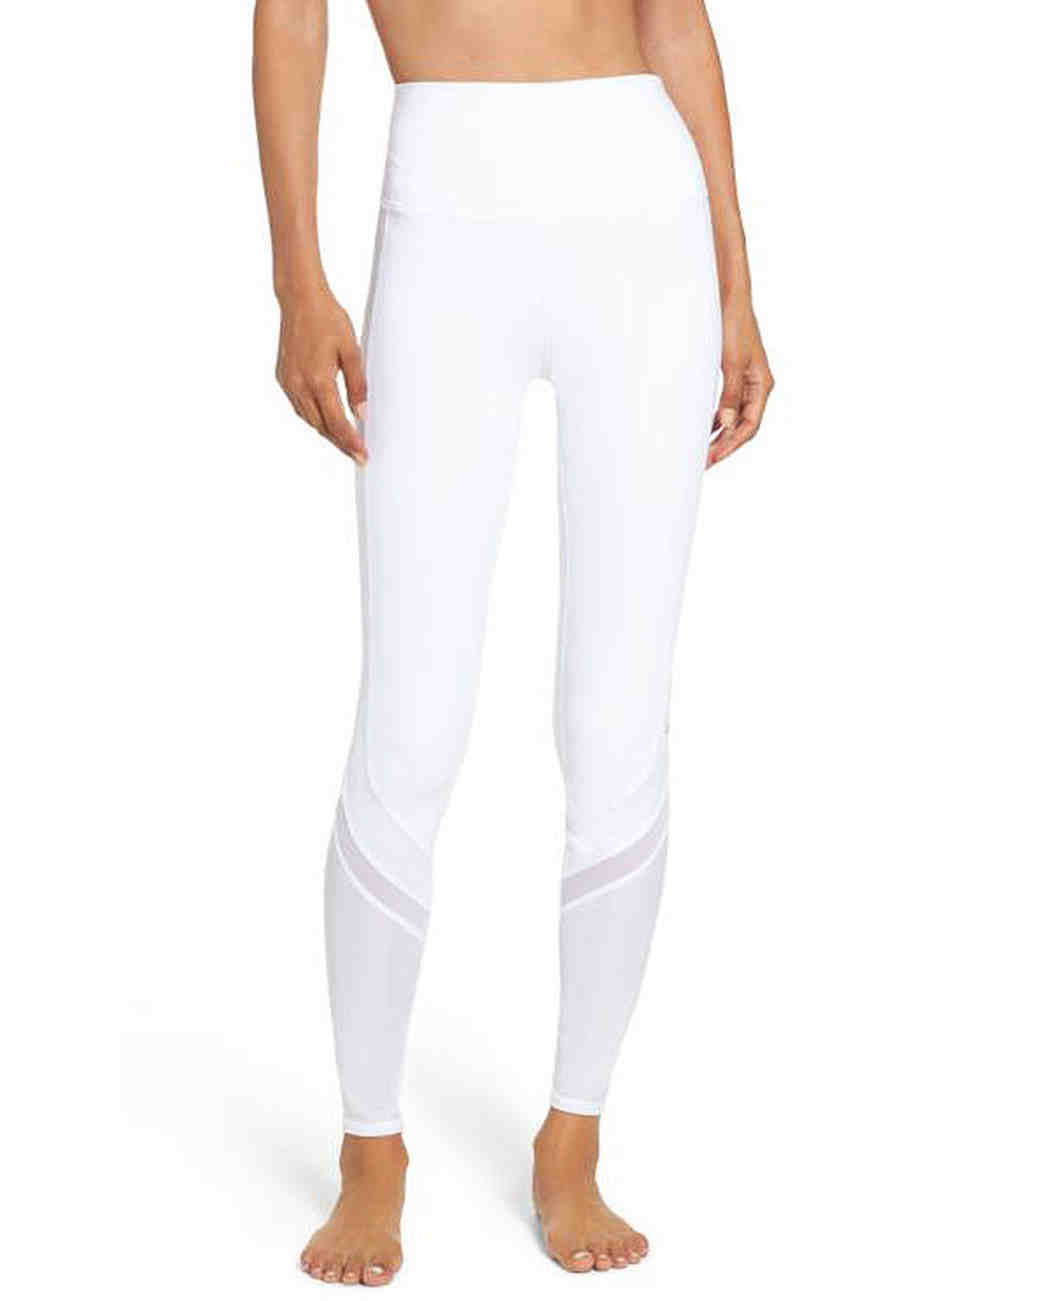 white workout pants